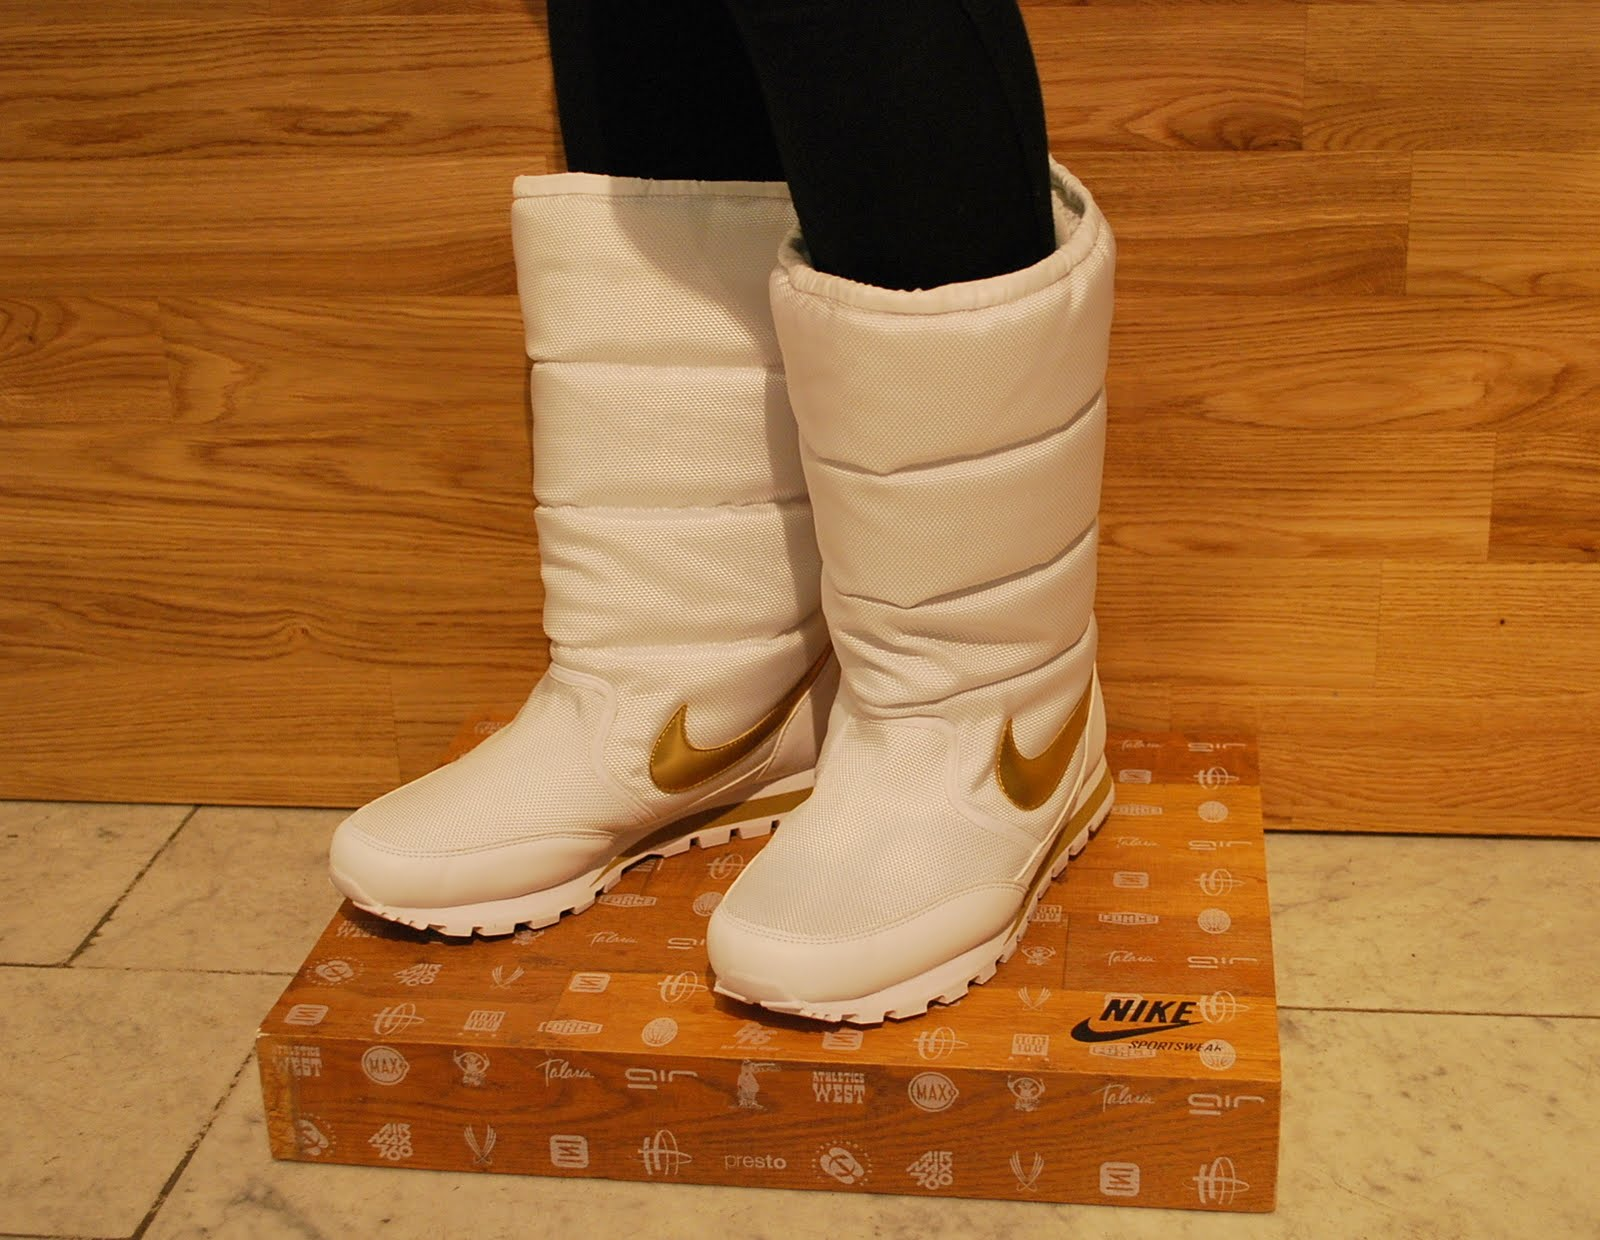 Six Feet Down: Womens Nike winterboots!!